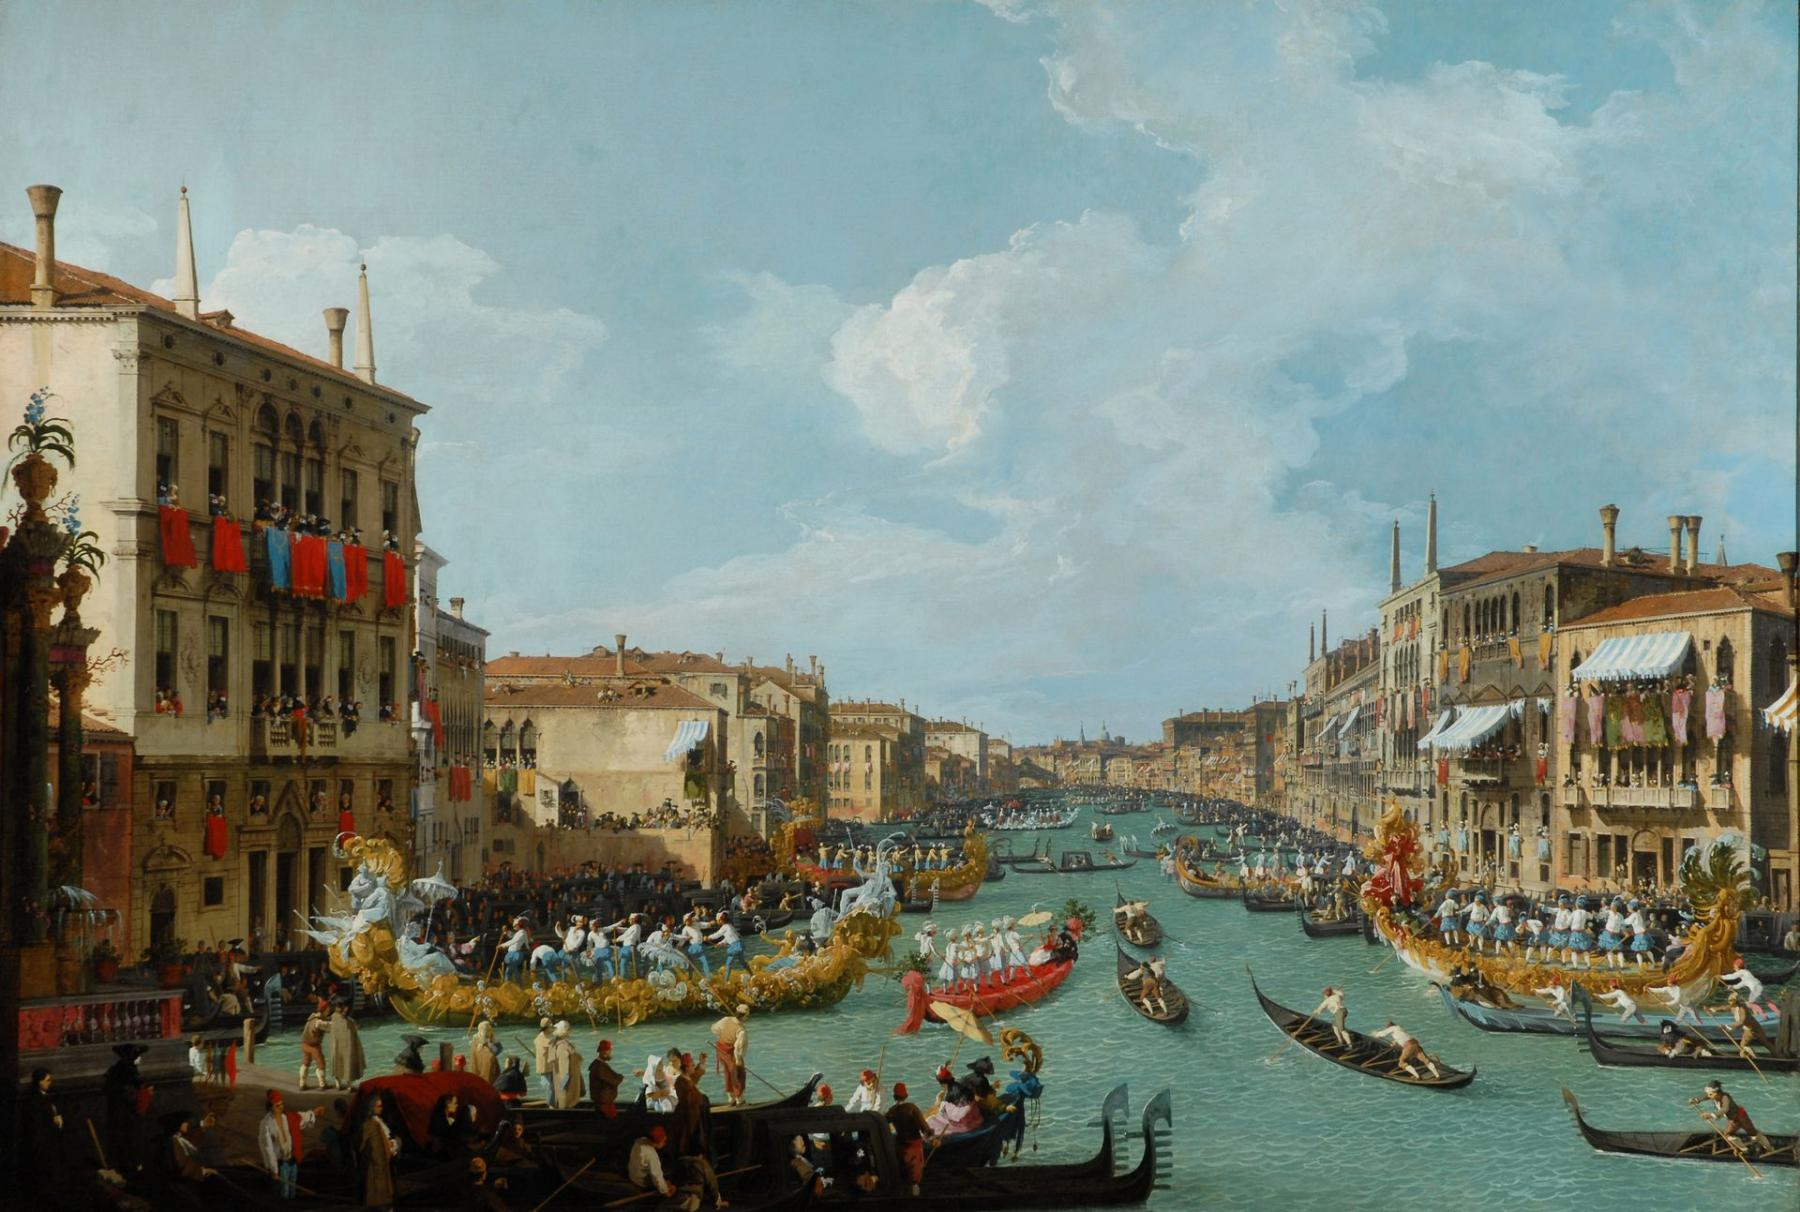 Italian Regatta on the Grand Canal